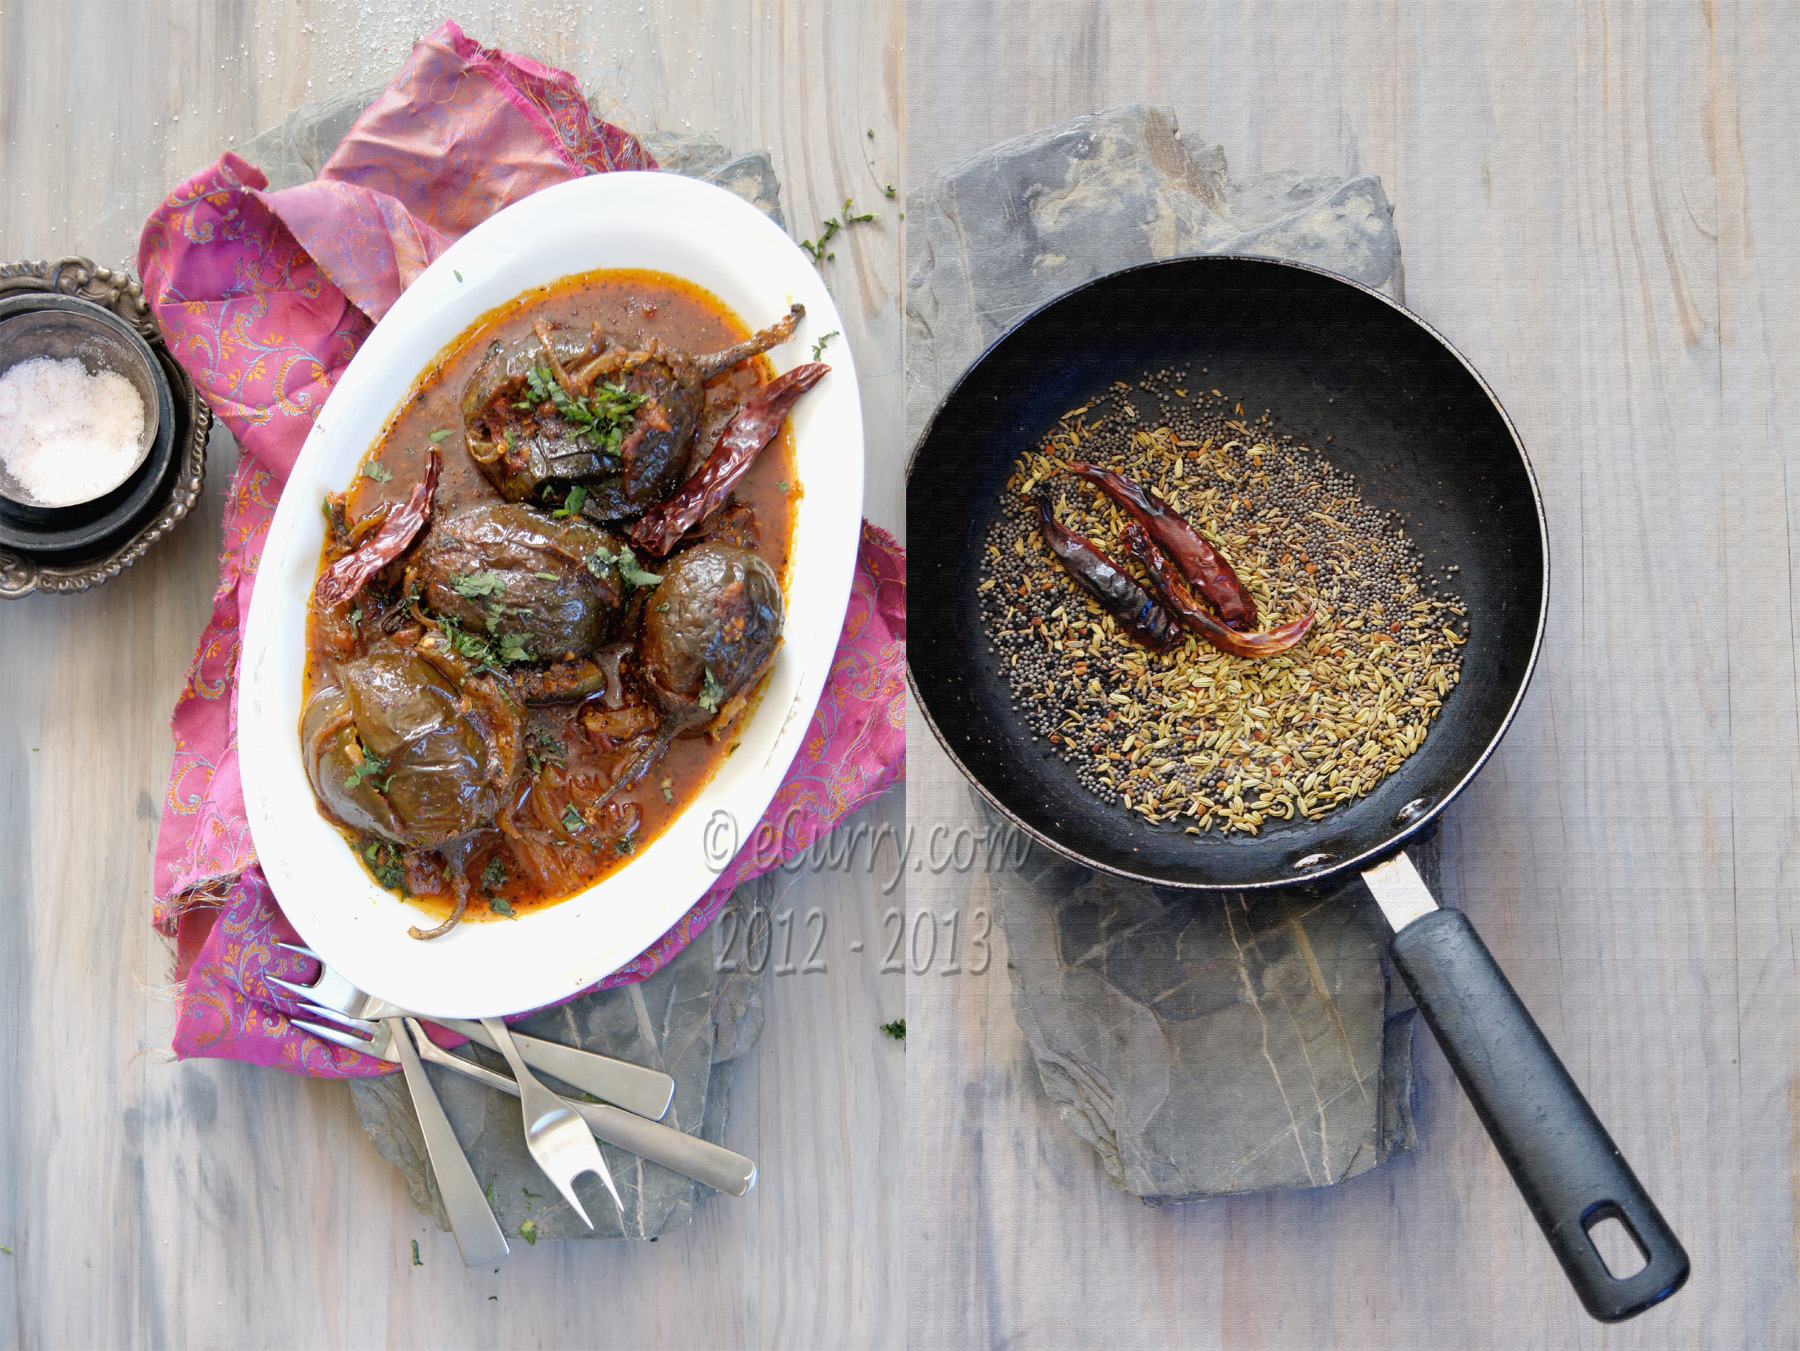 Achari baingan - Eggplant with Pickling Spices